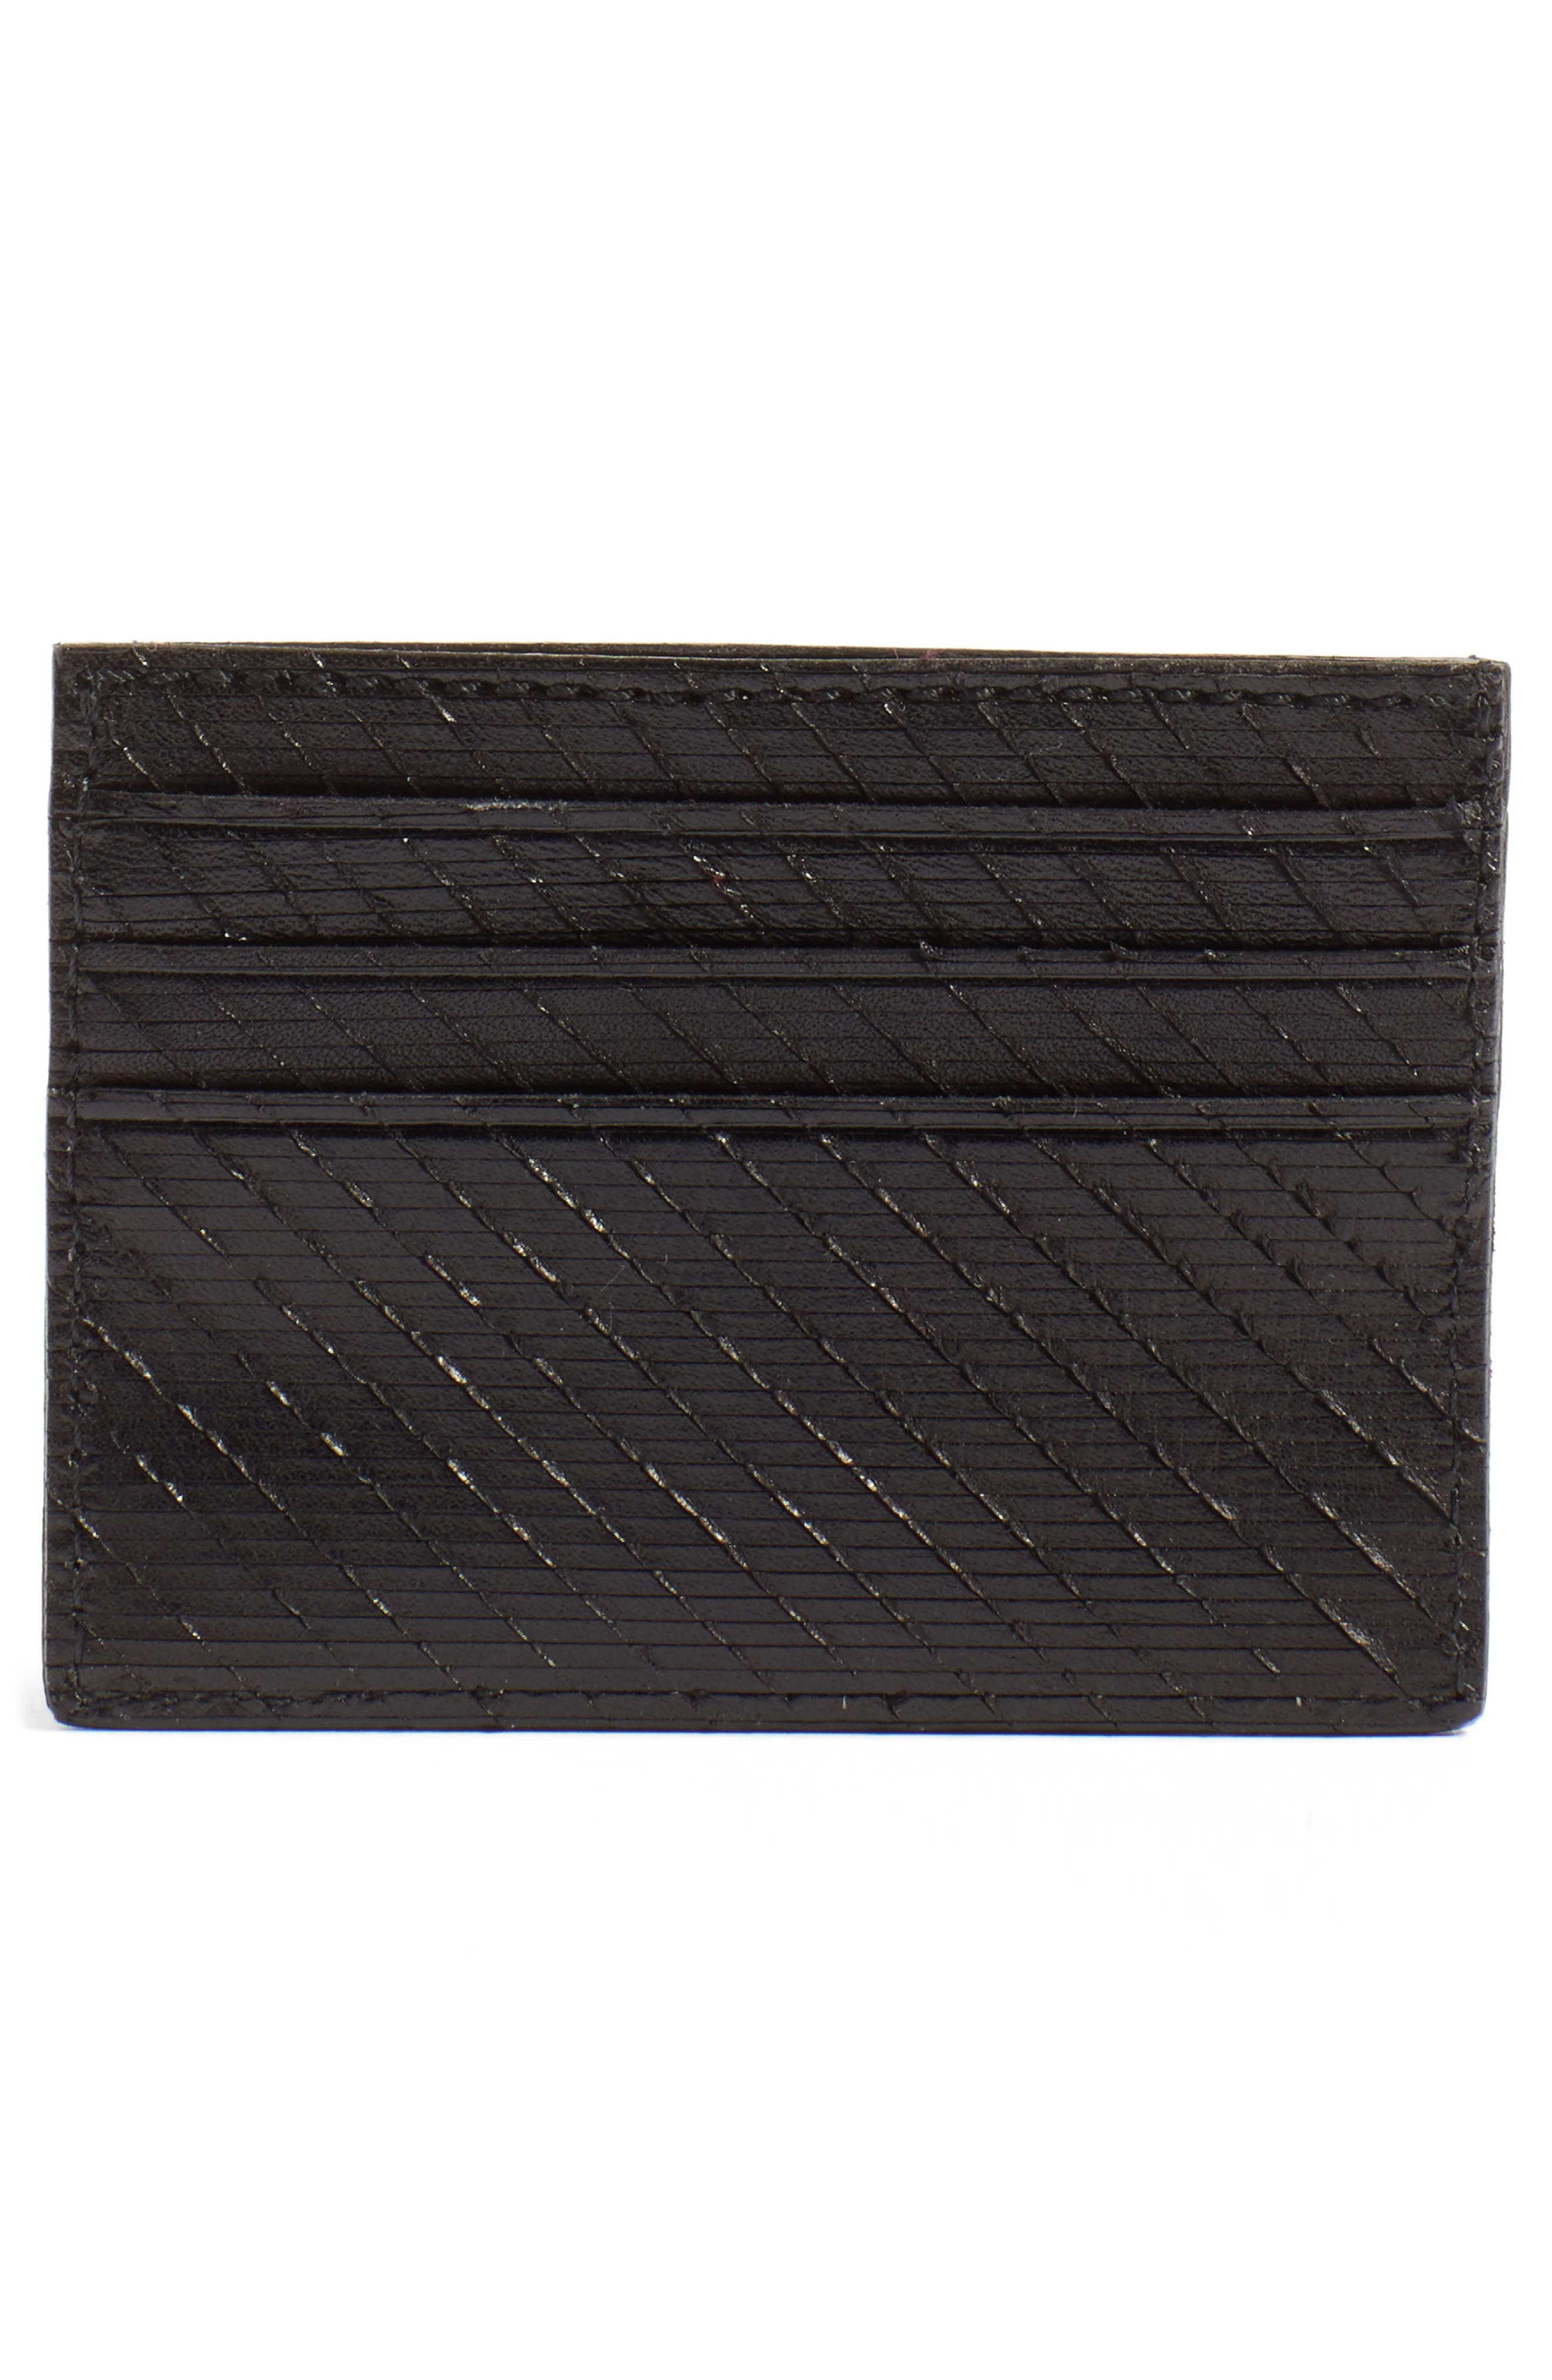 Leather Card Case,                             Alternate thumbnail 2, color,                             001